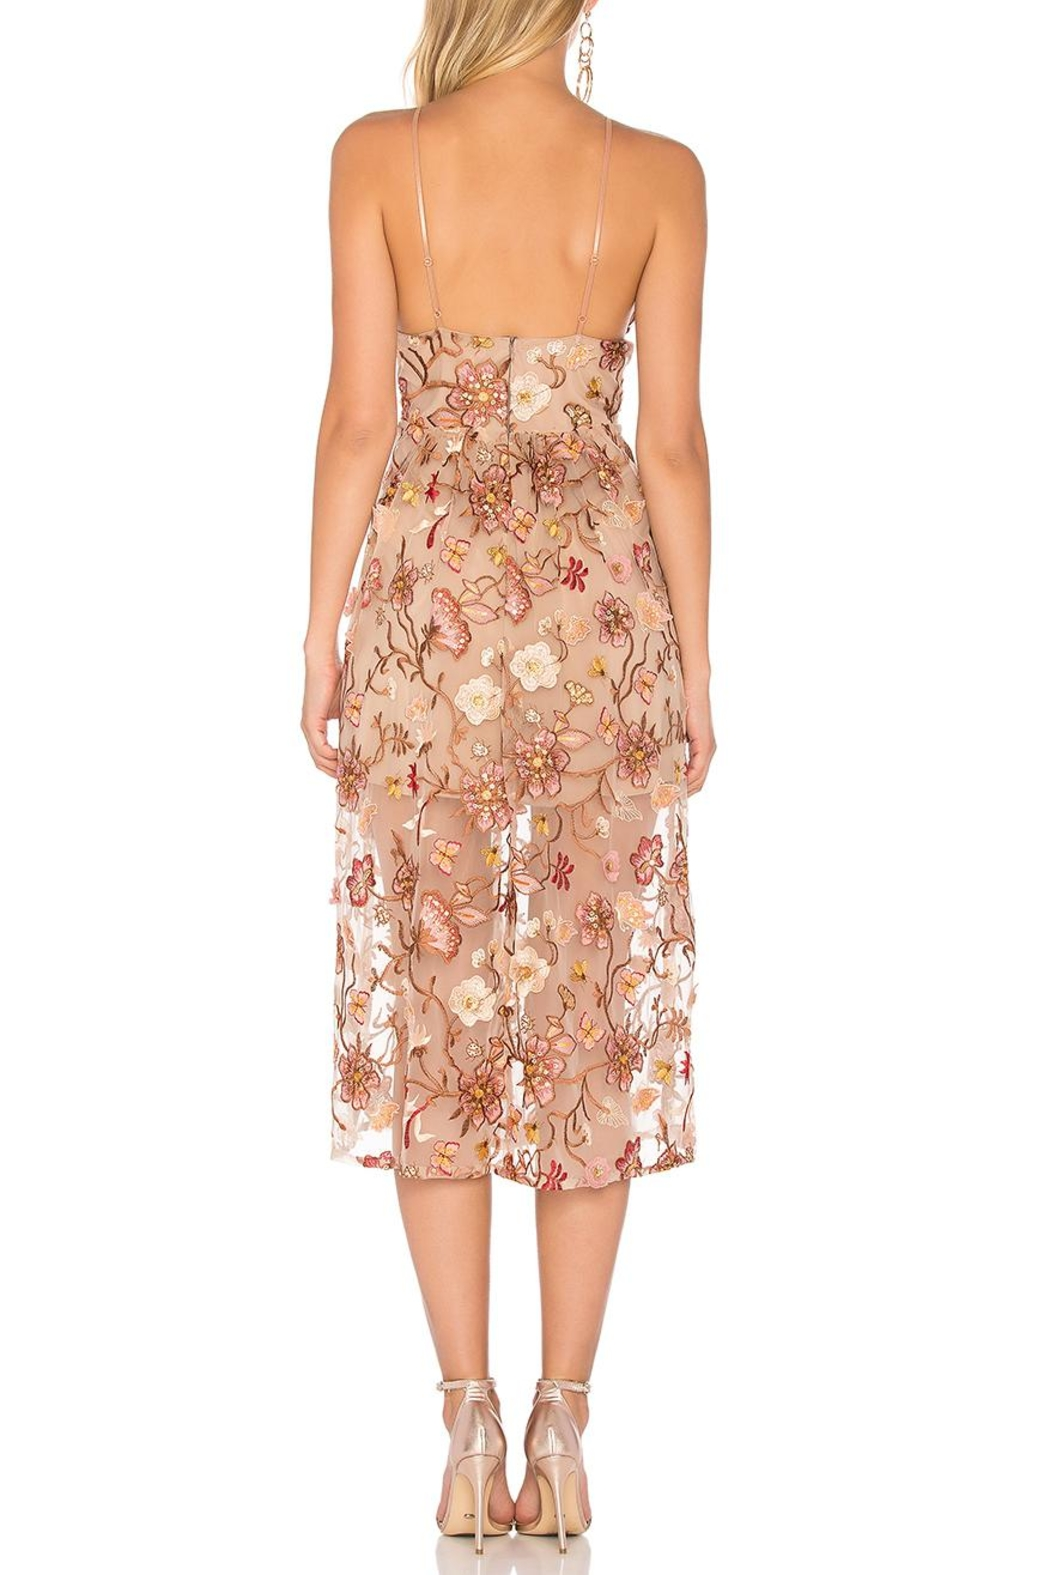 FOR LOVE & LEMONS Botanic Midi Dress - Side Cropped Image